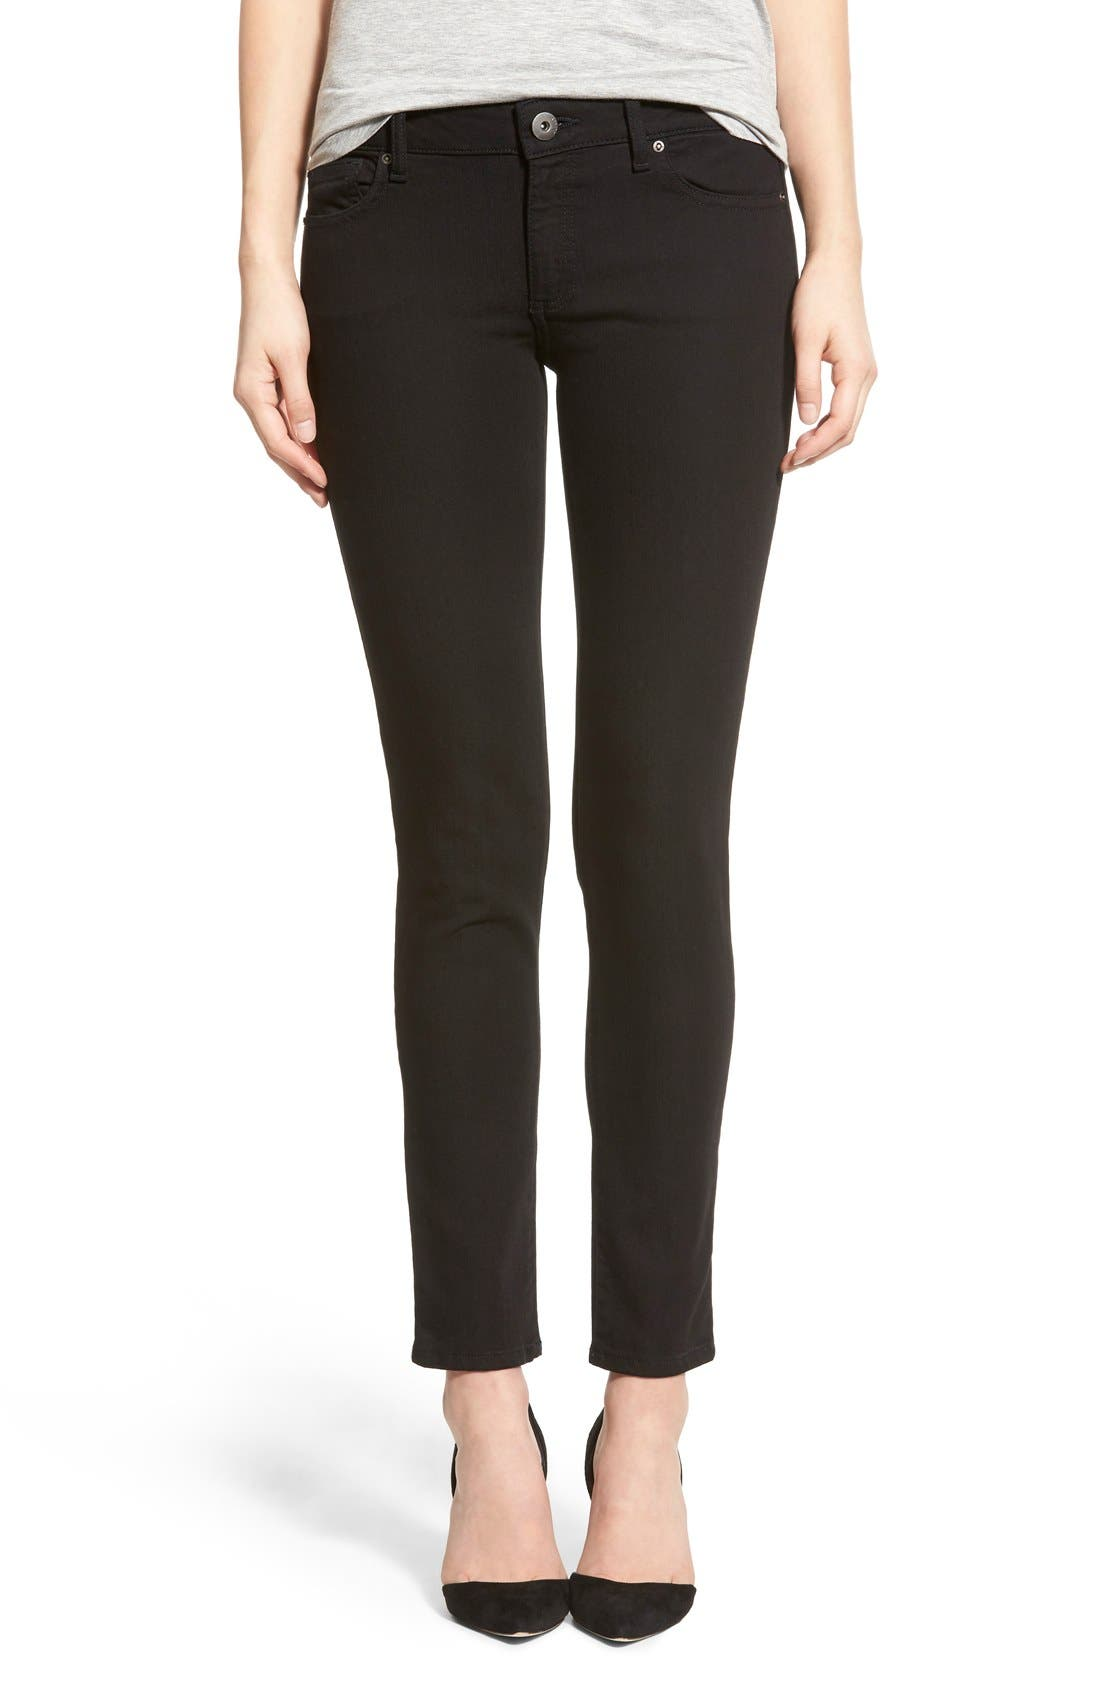 Alternate Image 1 Selected - DL1961 'Emma' Power Legging Jeans (Riker)